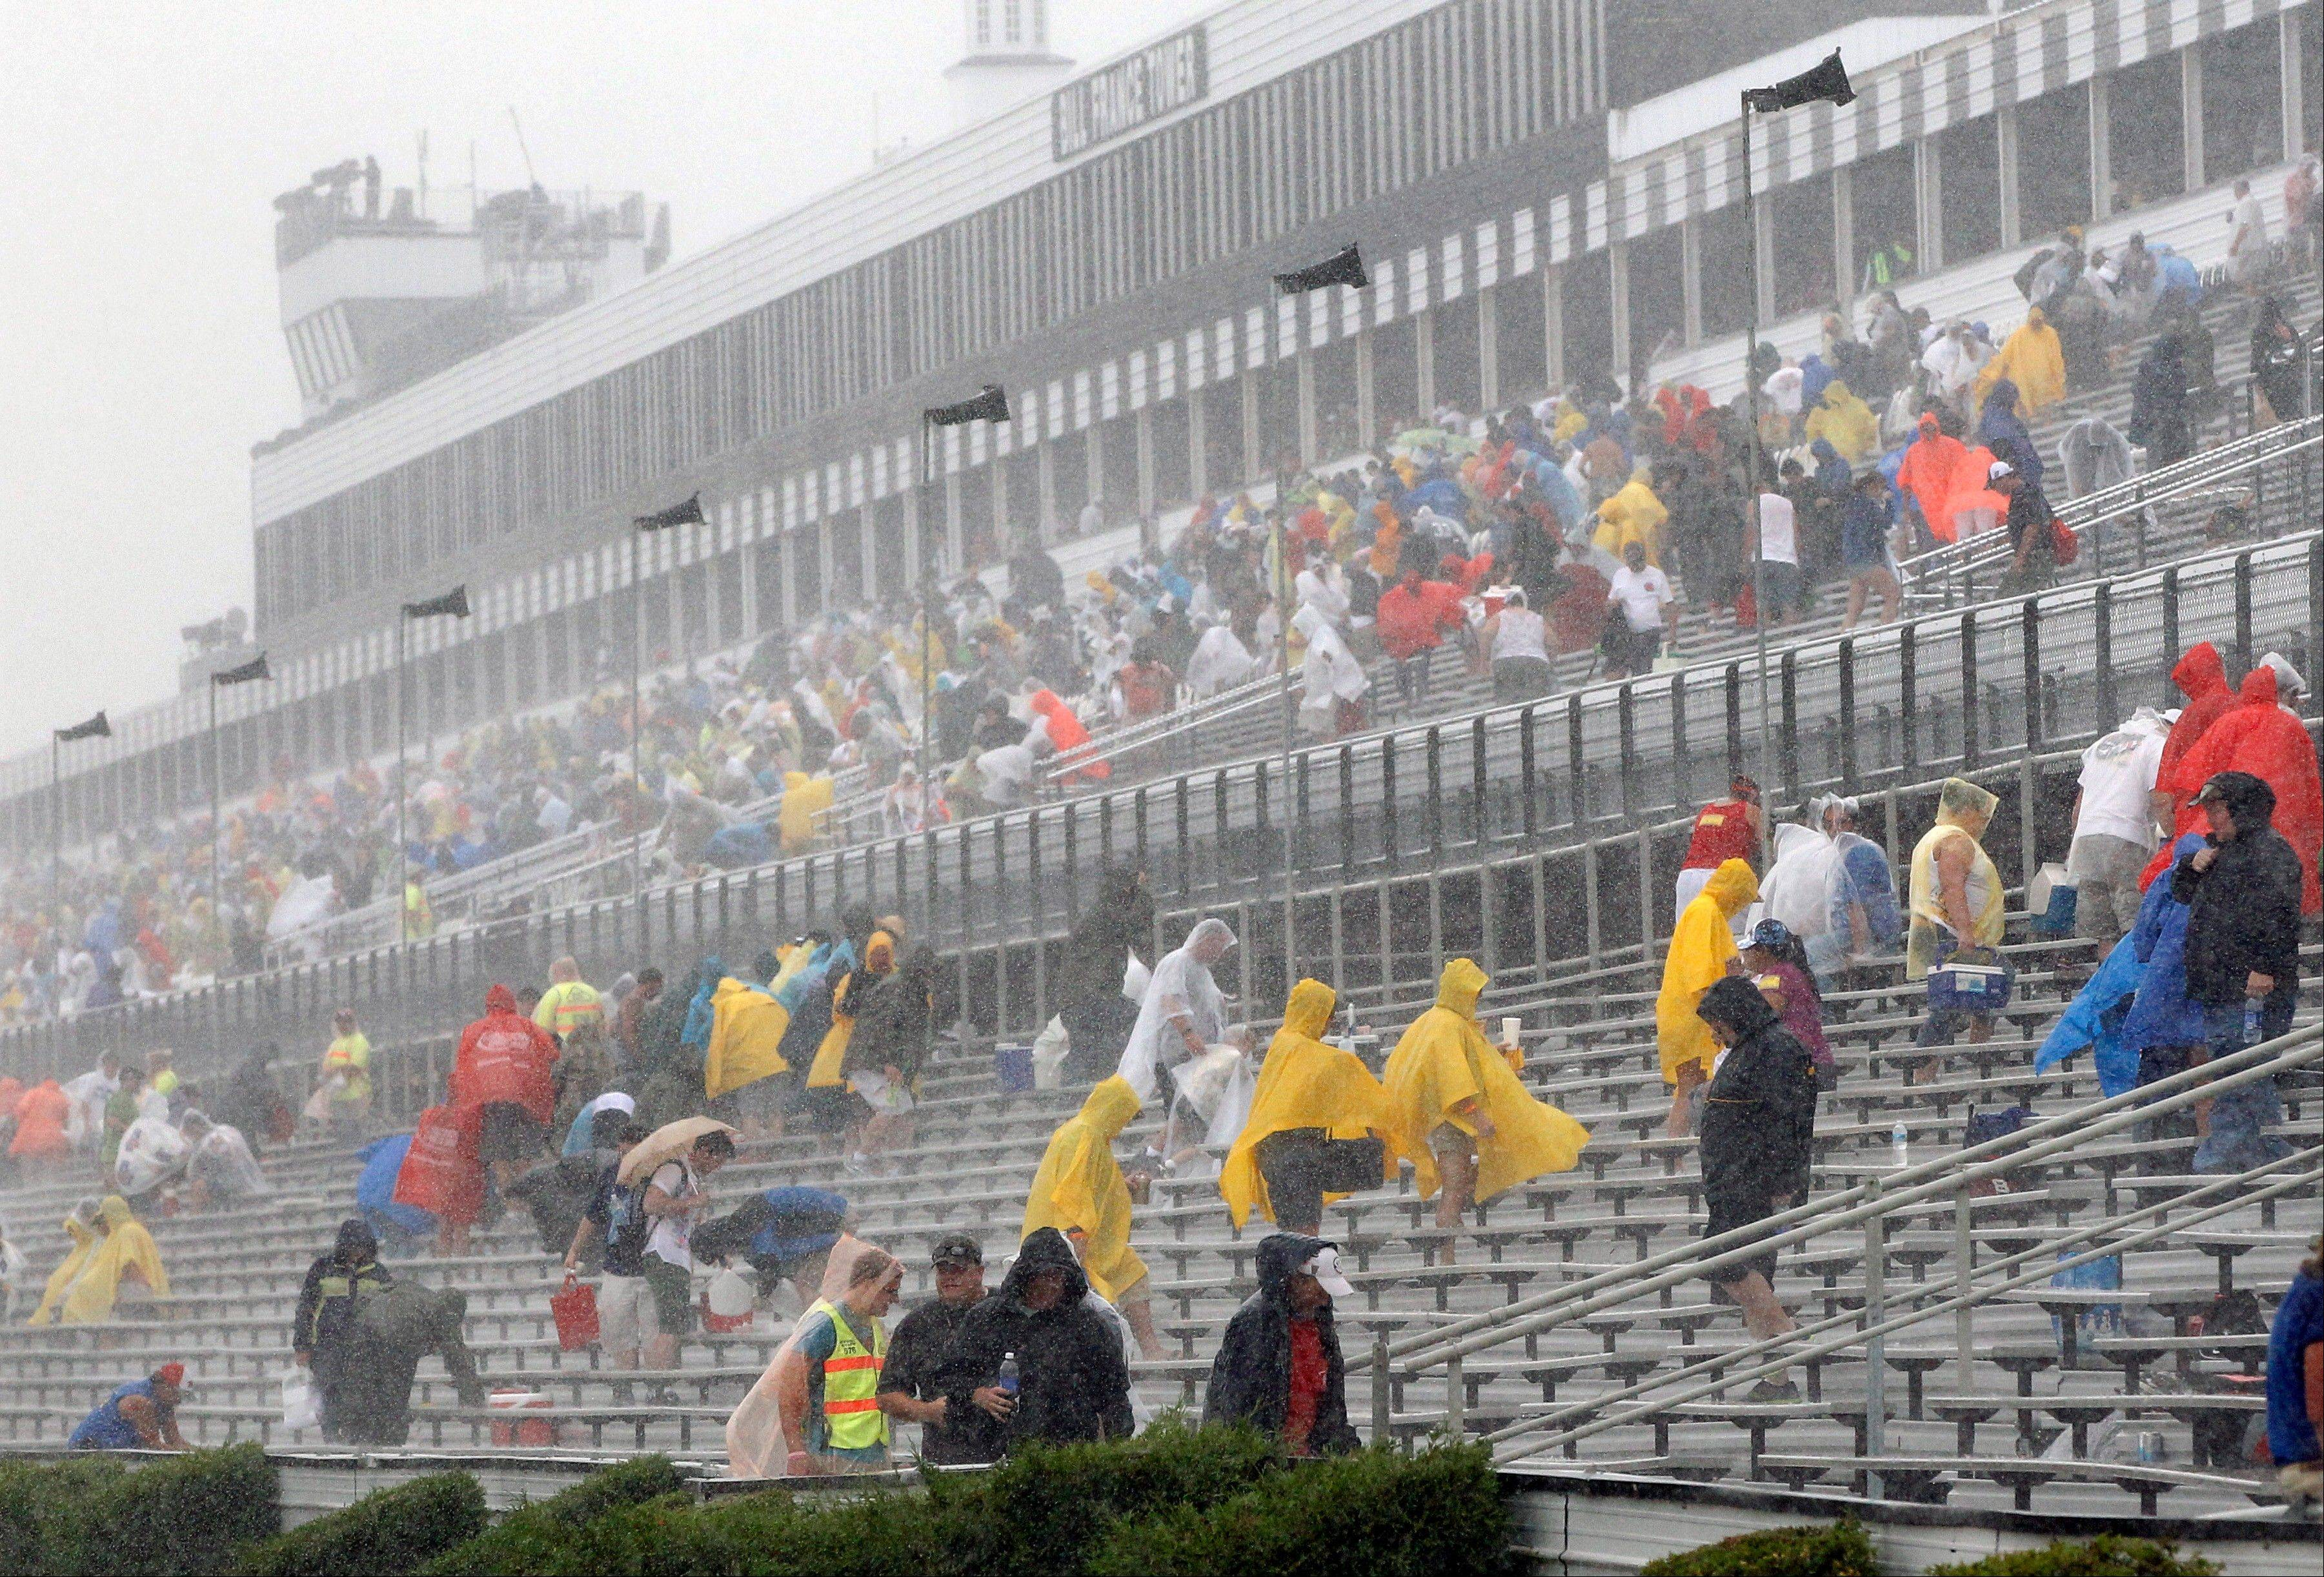 Fans leave the stands after the start of the NASCAR Sprint Cup Series auto race was postponed due to lightning and heavy rain on Sunday at Pocono Raceway in Long Pond, Pa.